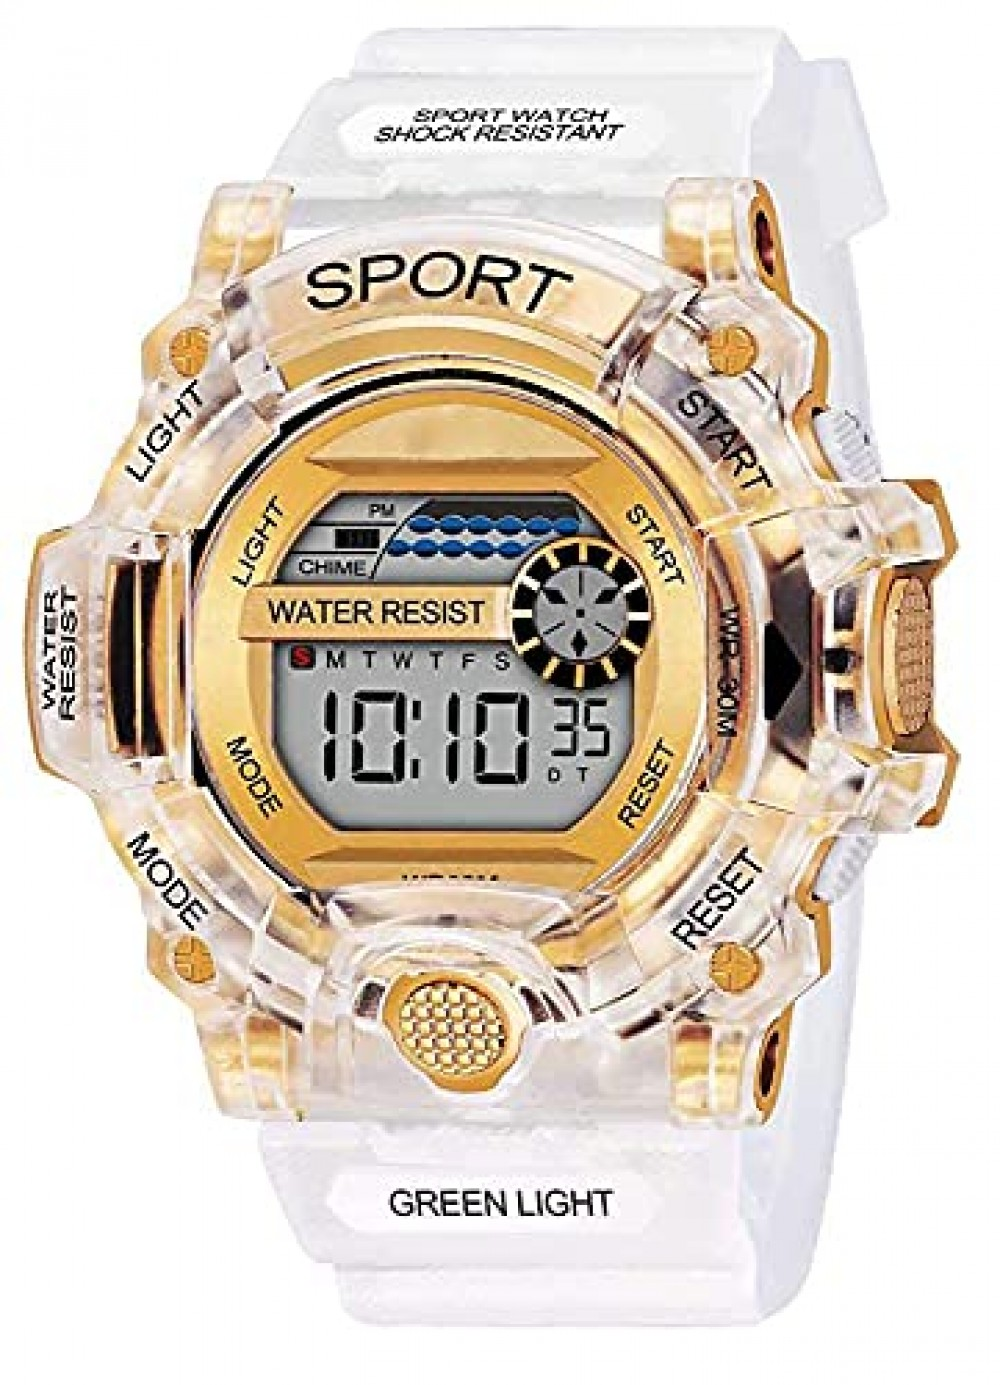 Transparent Strap Watch Heavy Quality Digital Alarm Shockproof Multi-Functional Automatic Waterproof Digital Sports Watch for Men  39 s Kids Watch for Boys